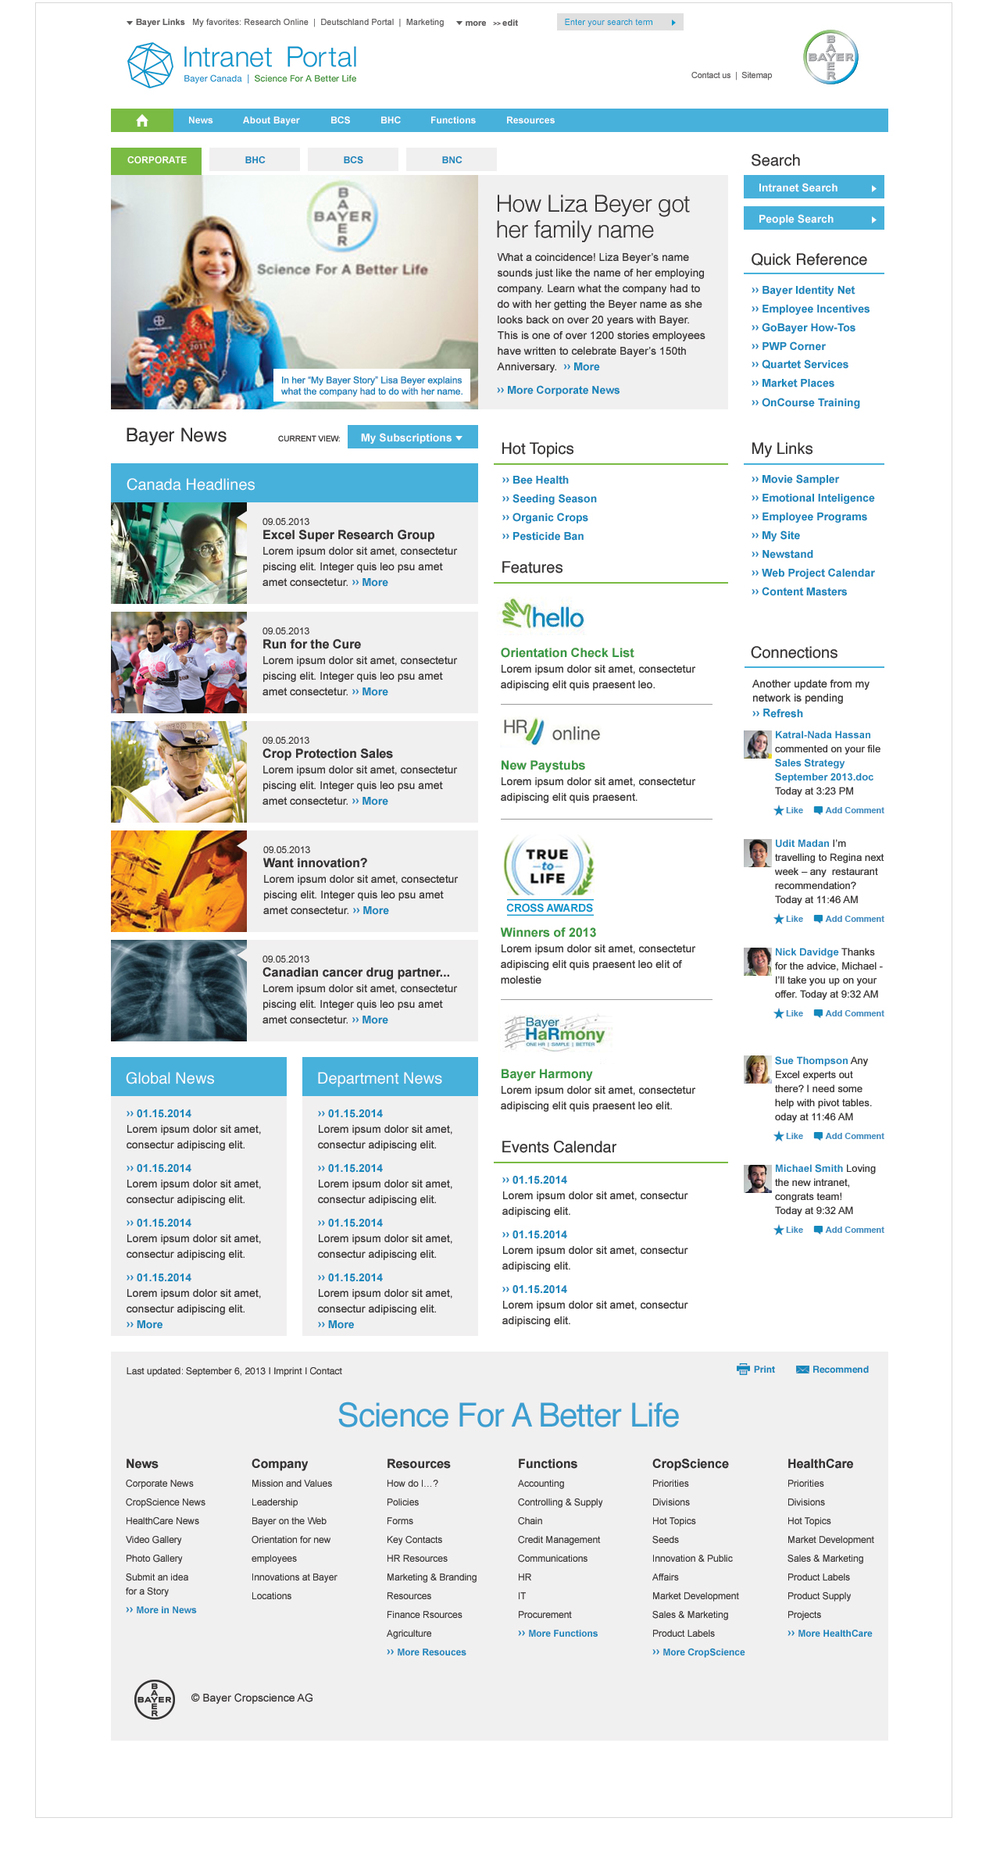 bayer_intranet_home-2.jpg